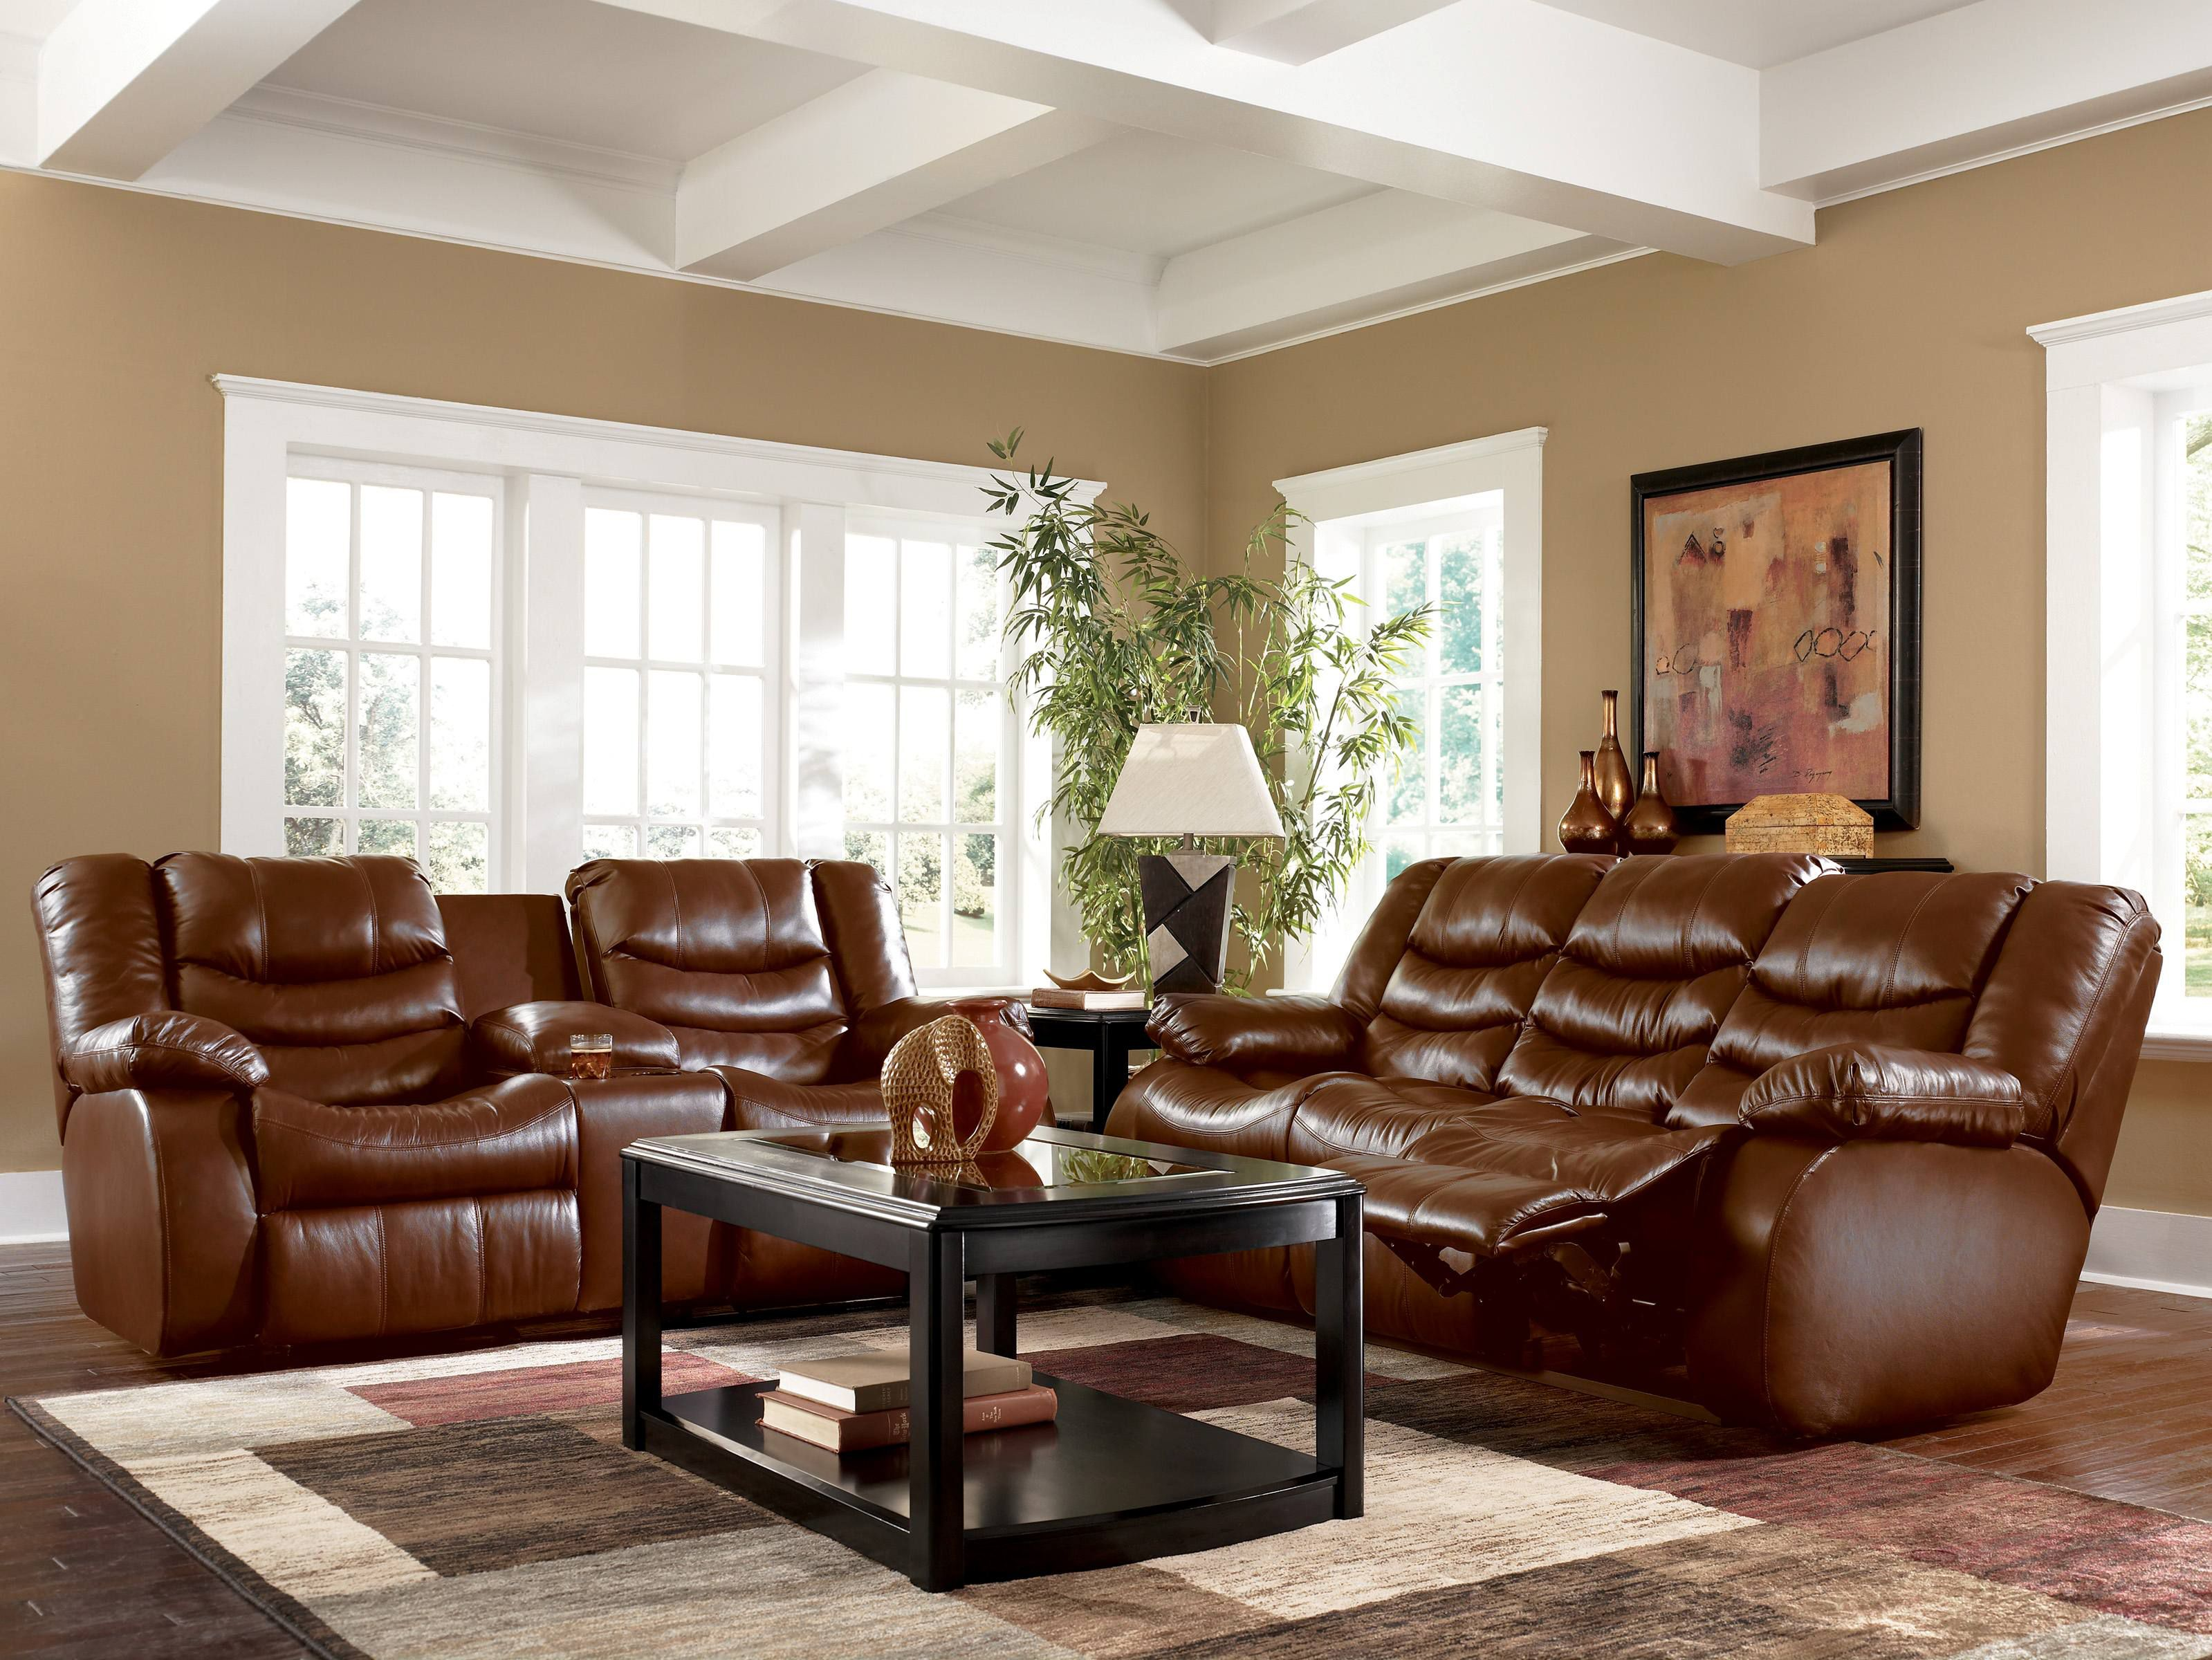 27 Best Living Room Leather Furniture Images On Pinterest  Living Entrancing Furniture Design For Small Living Room Review